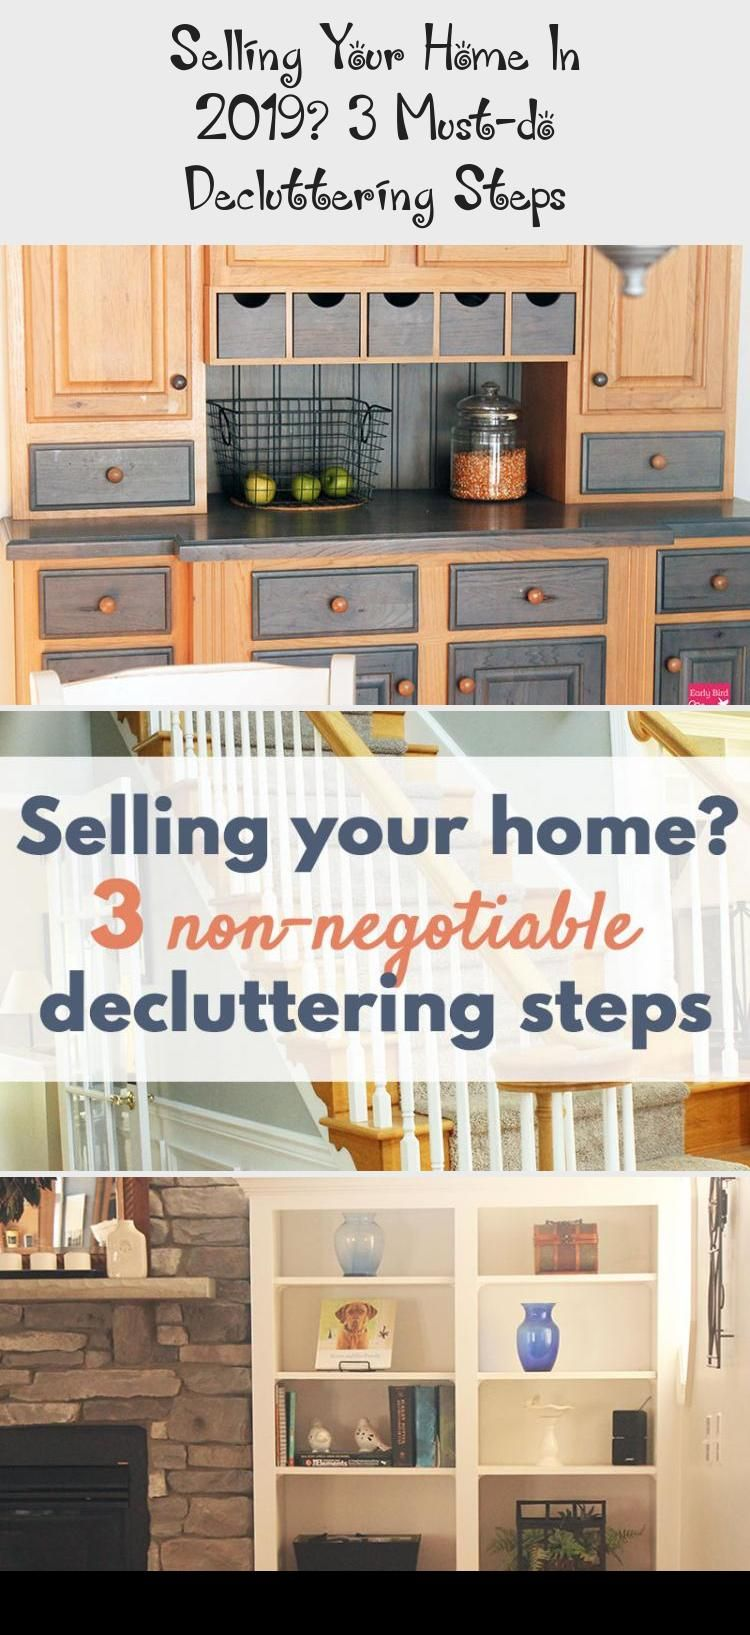 Decluttering before moving can help get your home sold